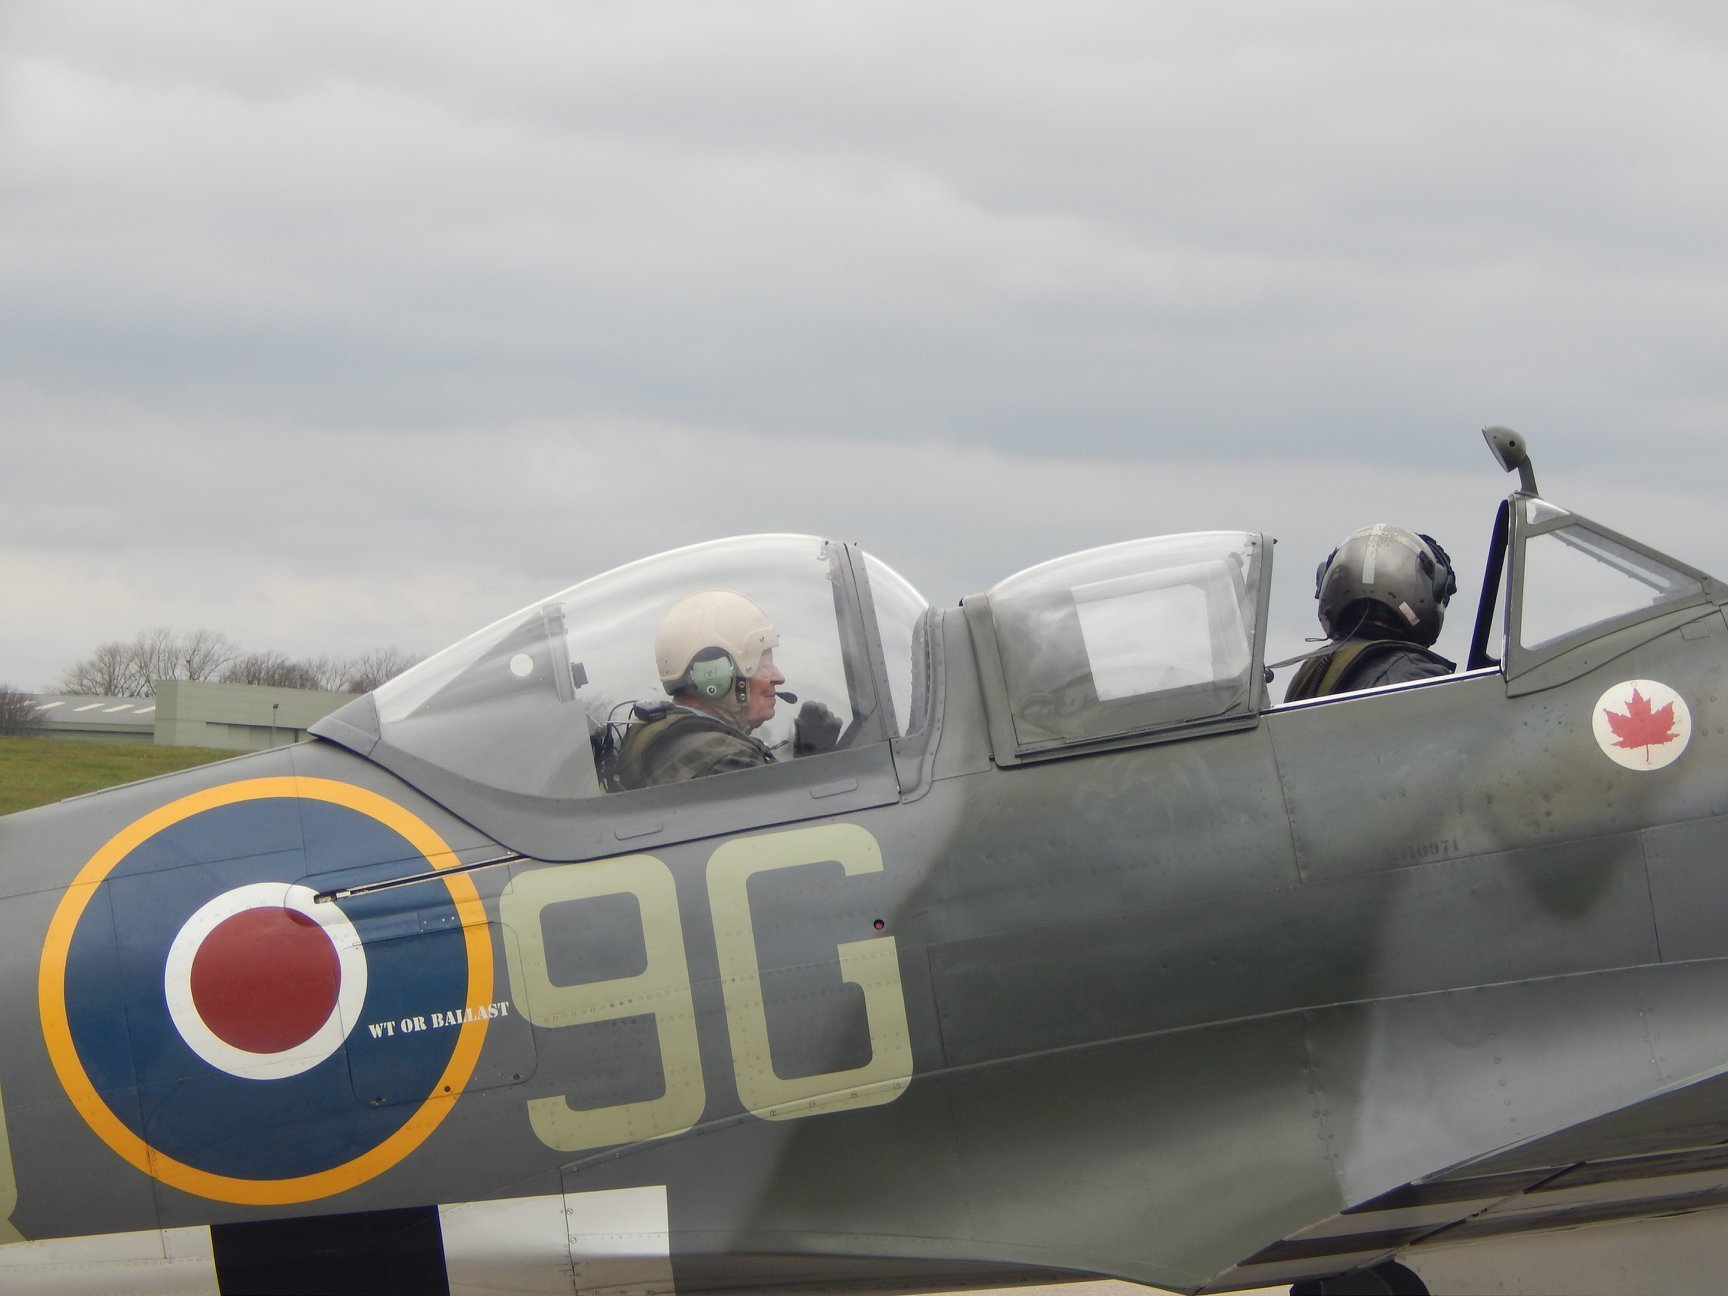 Southampton man, 94, finally gets trip of a lifetime in a Spitfire